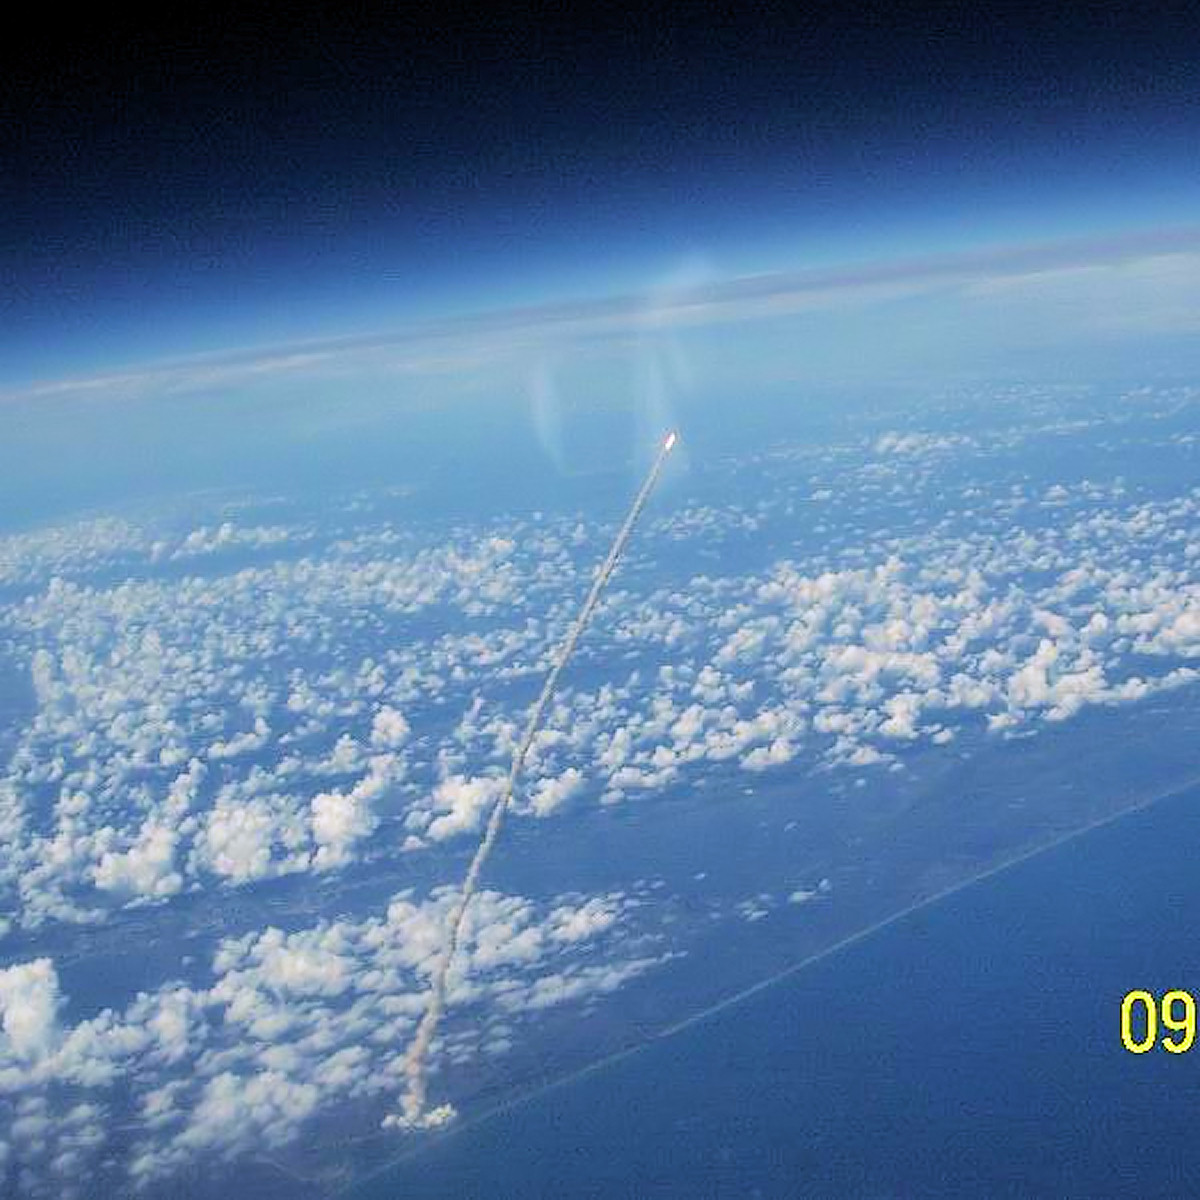 shuttle launch from space station - photo #3